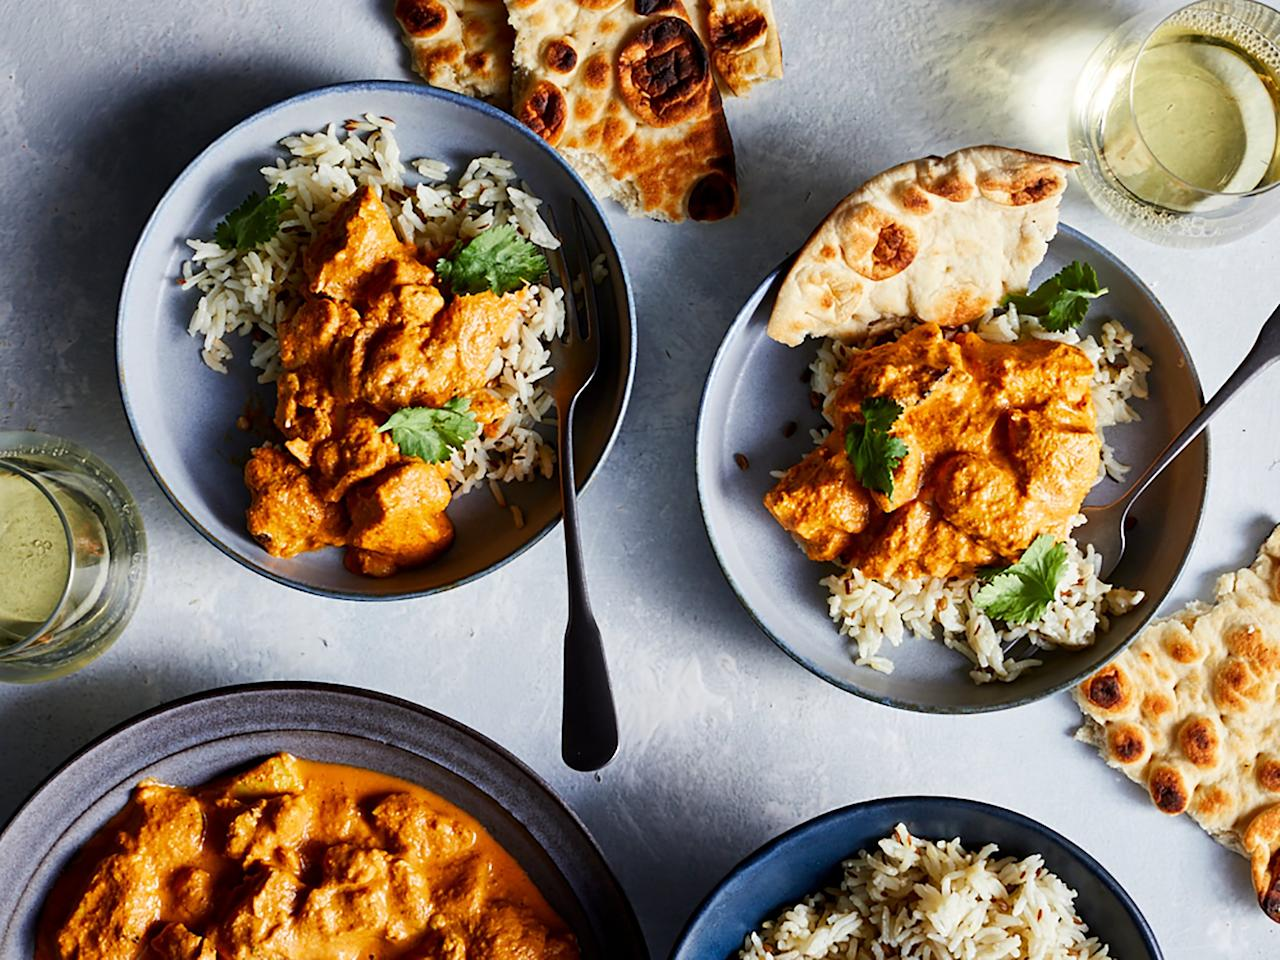 """<p>With a little sheet pan savvy, flavor-packed chicken tikka masala has never been more accessible. While we suggest marinating the chicken for at least four hours, if you didn't plan ahead, you can simply marinate the inherently tender chicken thighs for as long as you have time for. </p> <p><a href=""""https://www.myrecipes.com/recipe/sheet-pan-chicken-tikka-masala"""">Sheet-Pan Chicken Tikka Masala Recipe</a></p>"""